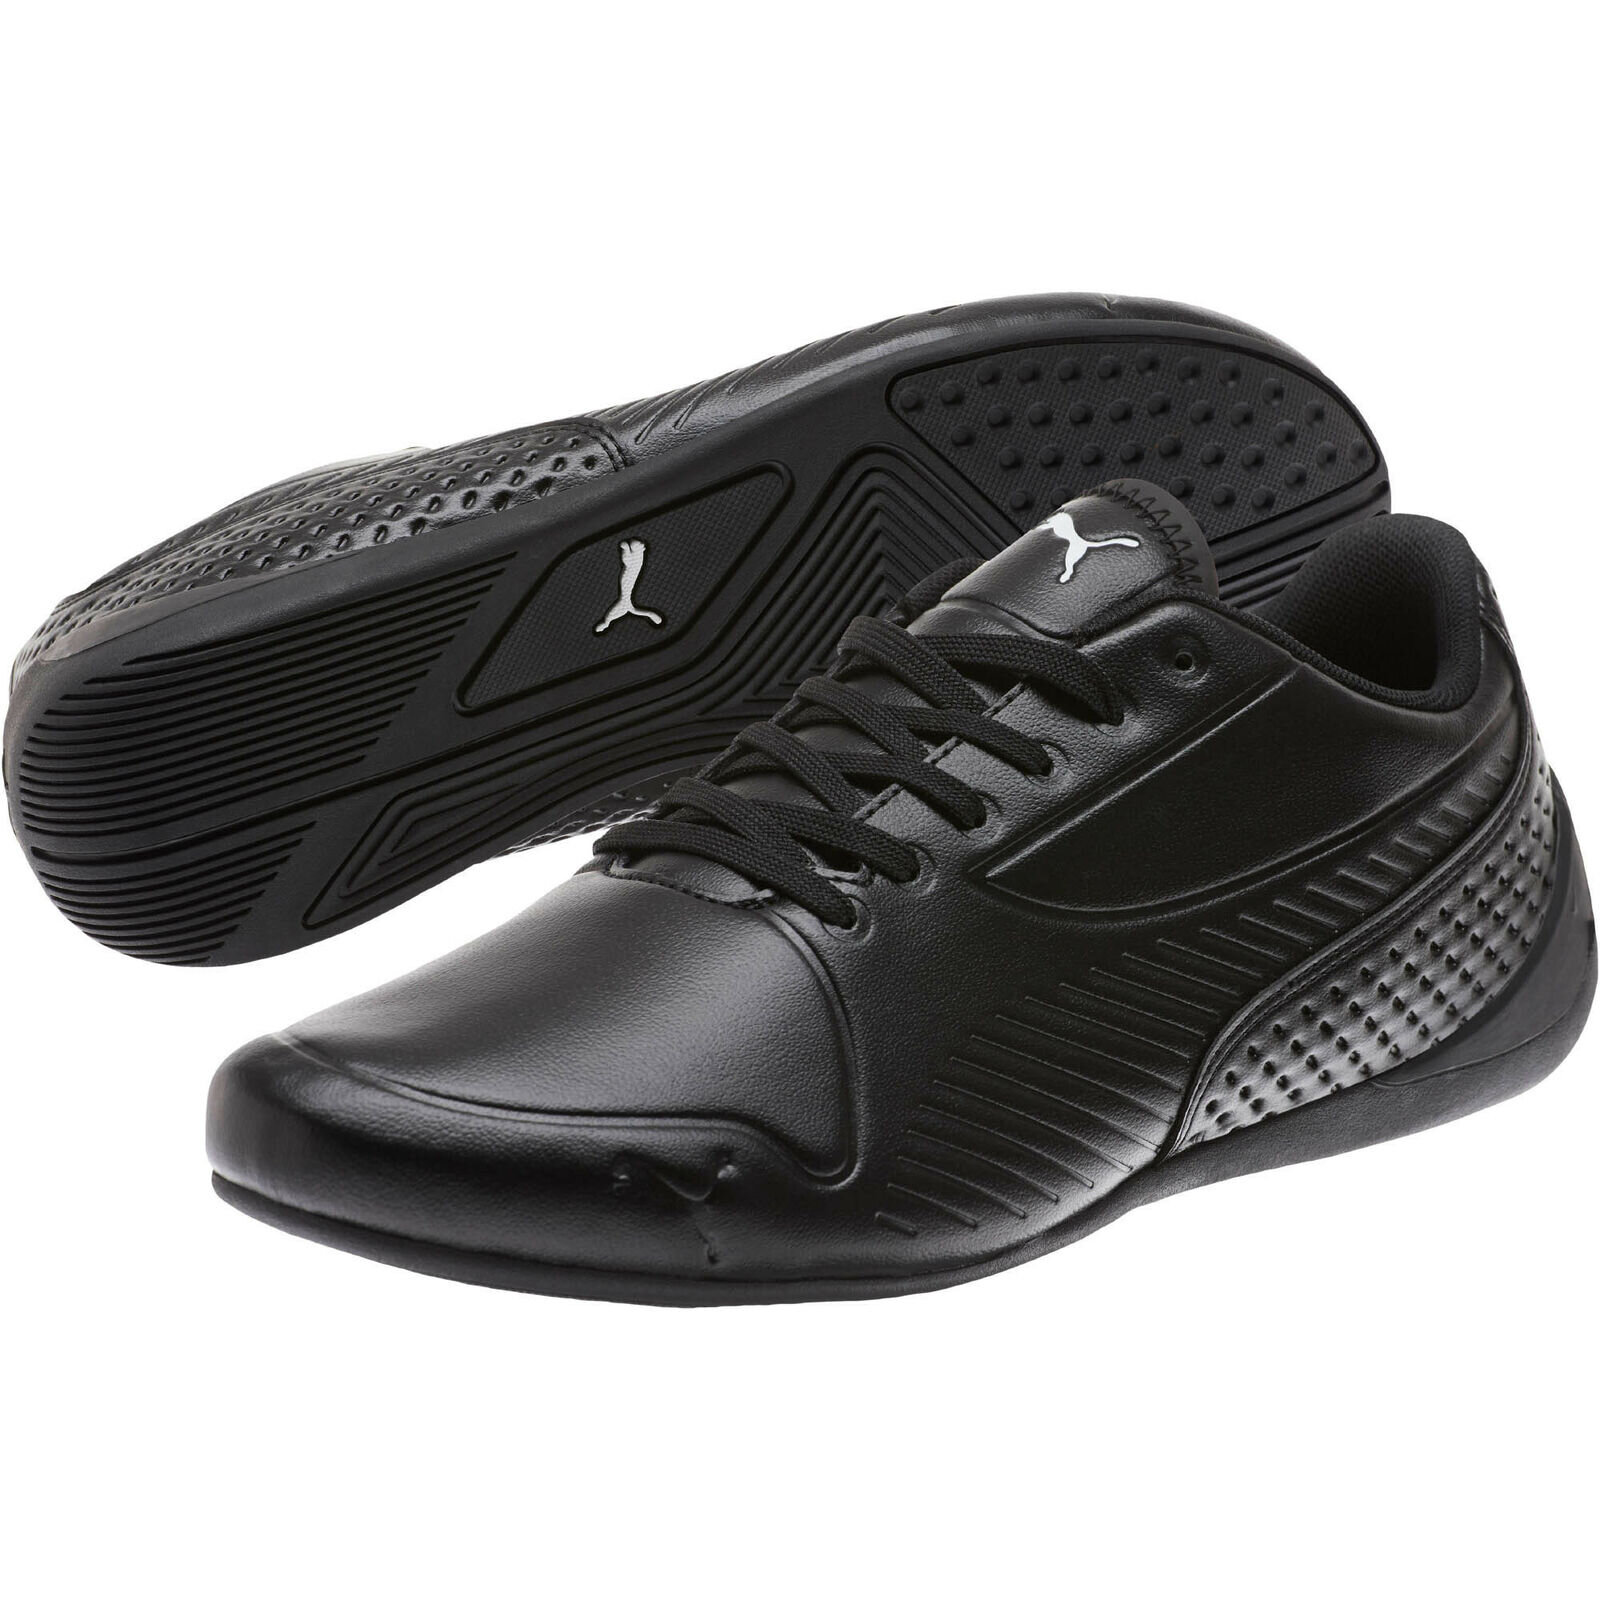 PUMA Drift Cat 7S Ultra Men's Shoes   Regular Price: $75   Today's Price: $28 (63% Off!)    via eBay